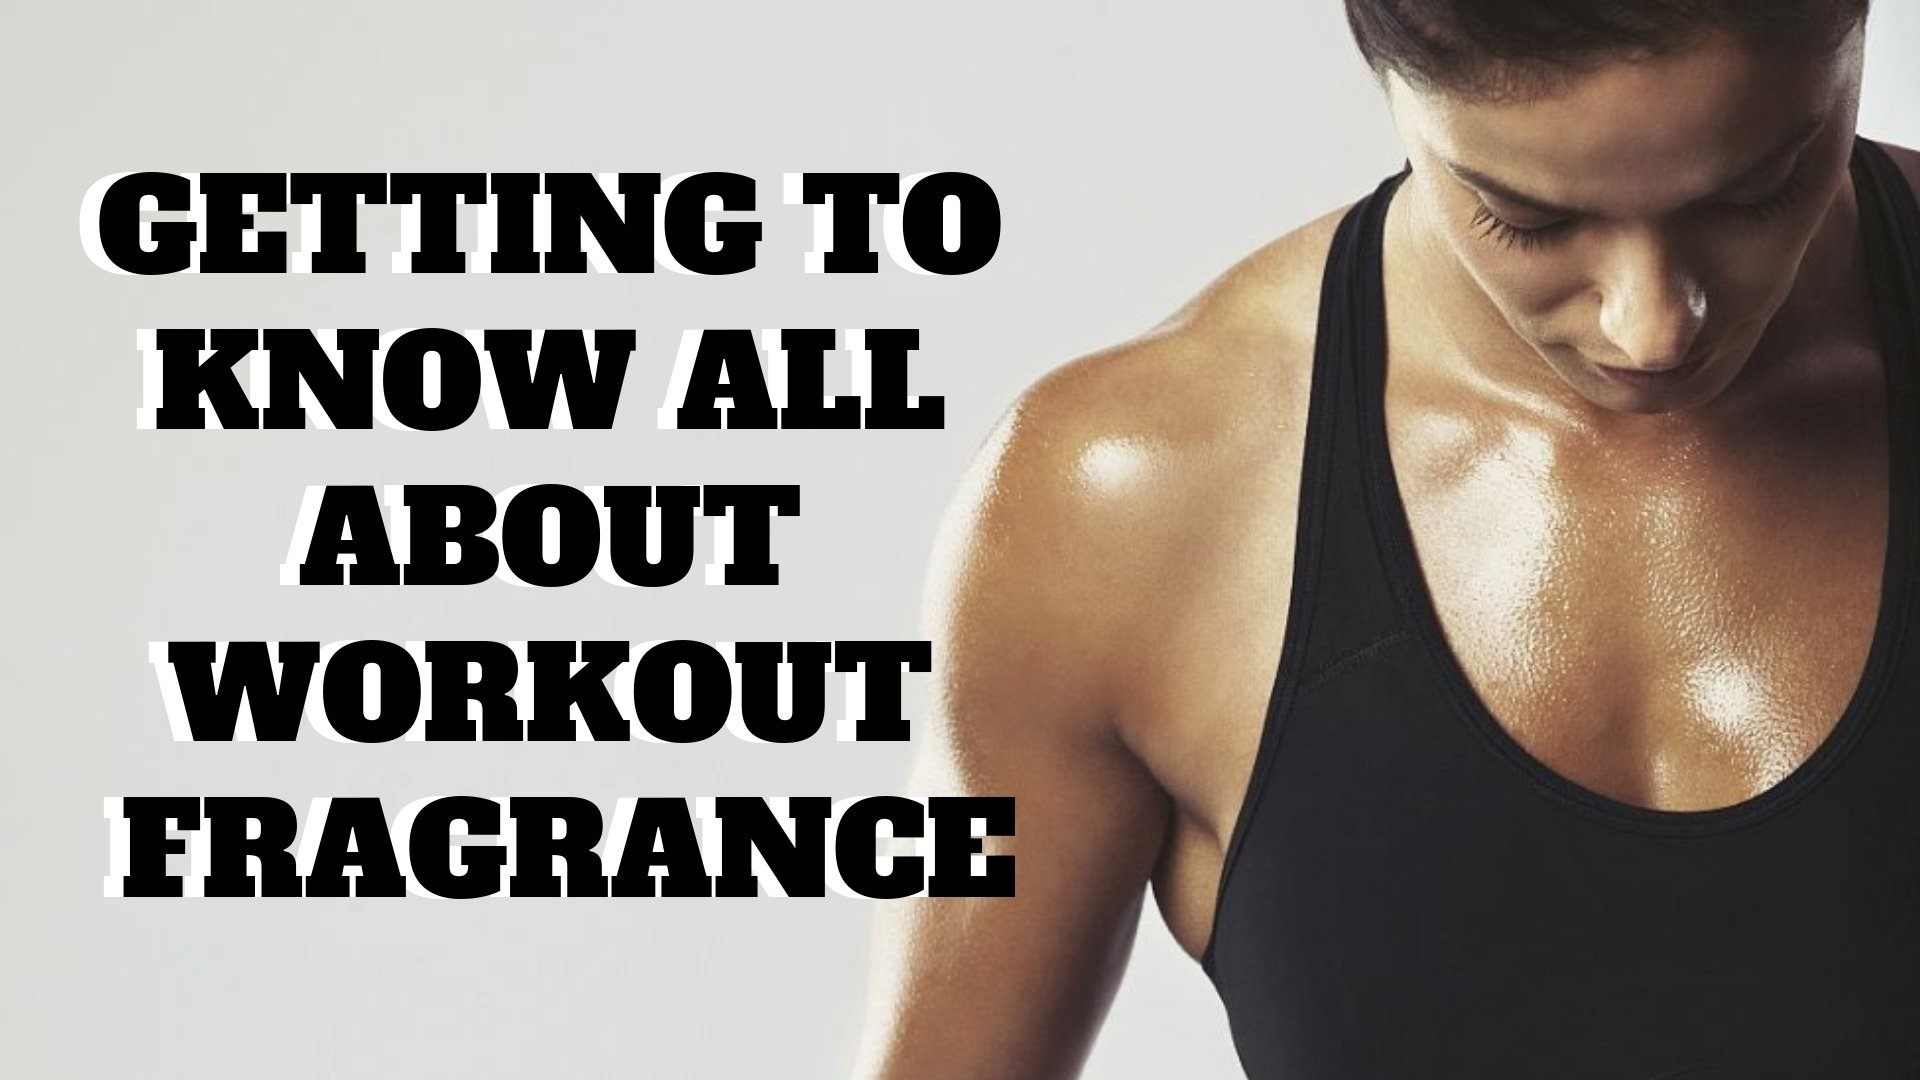 Getting to Know All About Workout Fragrance